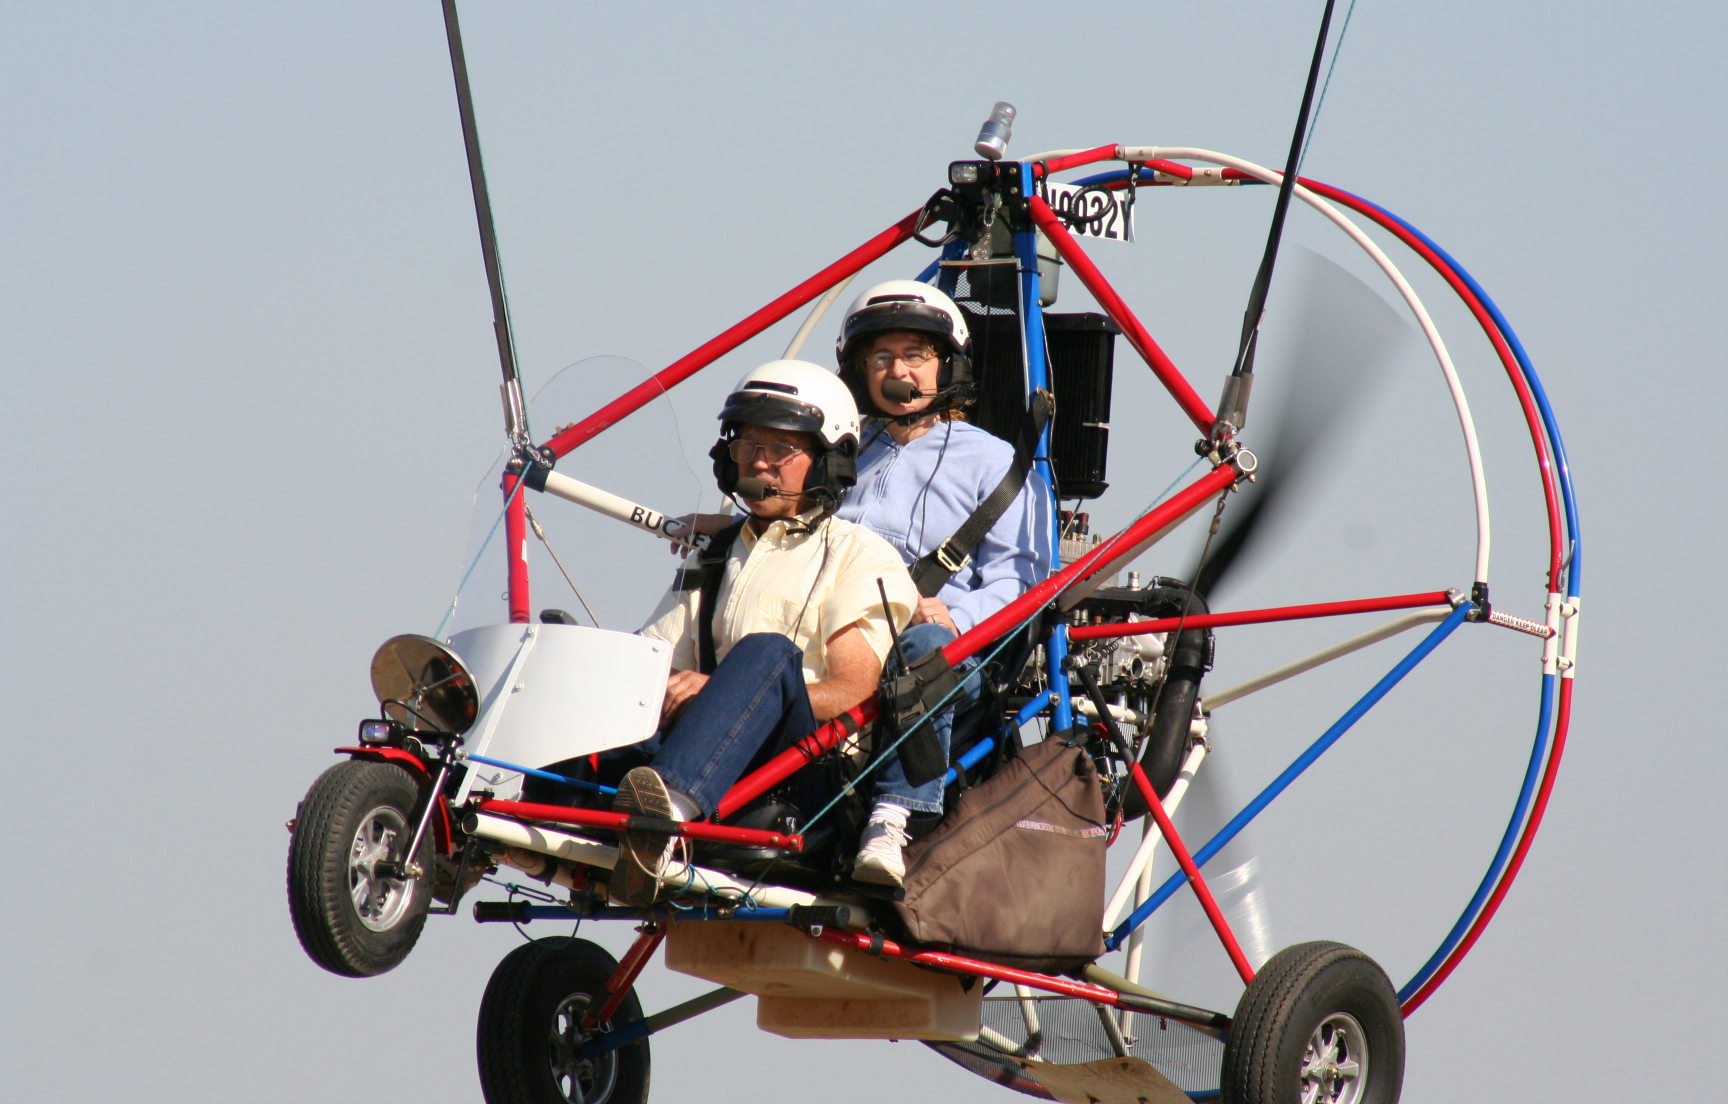 Lititz, PA  May/June dates TBA 2020   – Repairman Inspection Powered Parachute by request